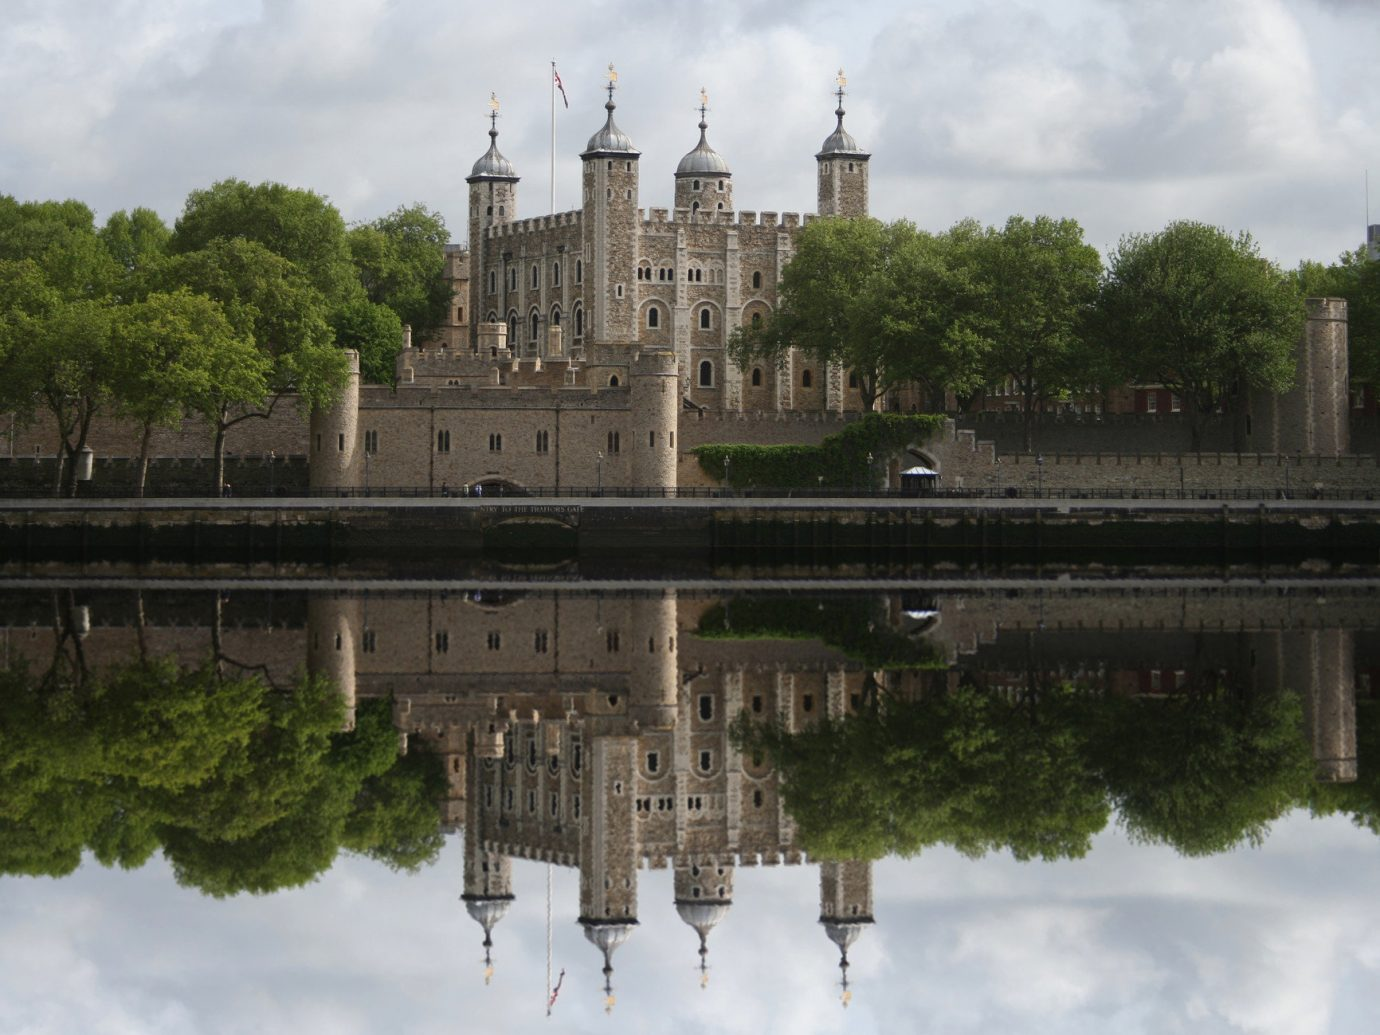 outdoor sky tree water reflection River waterway building bank cloud Lake plant moat castle reservoir château City stately home watercourse bridge reflecting pool old day surrounded